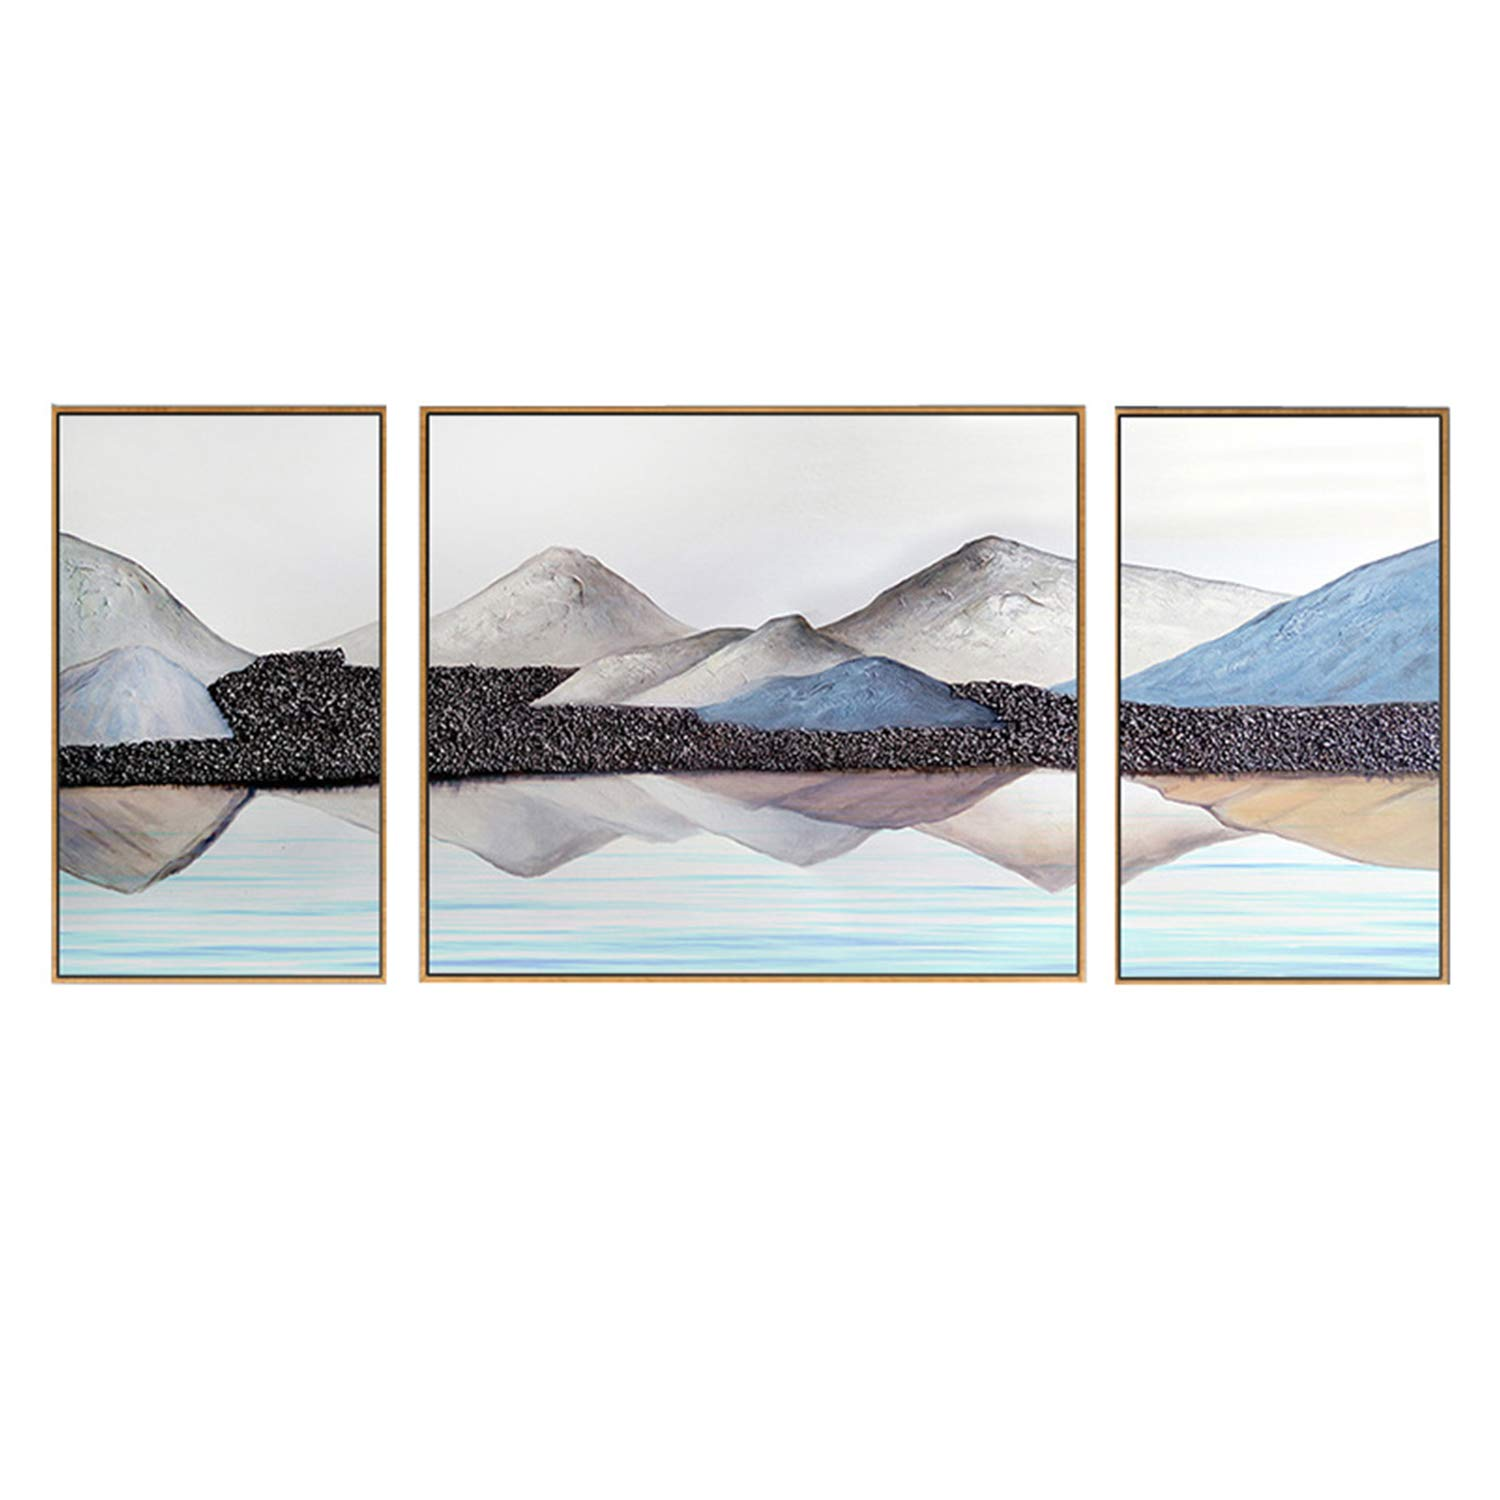 LUHSICE Large 5D Painting with Diamonds Full Drill - Landscape Scenery, (Round Drill 280x100cm) by LUHSICE